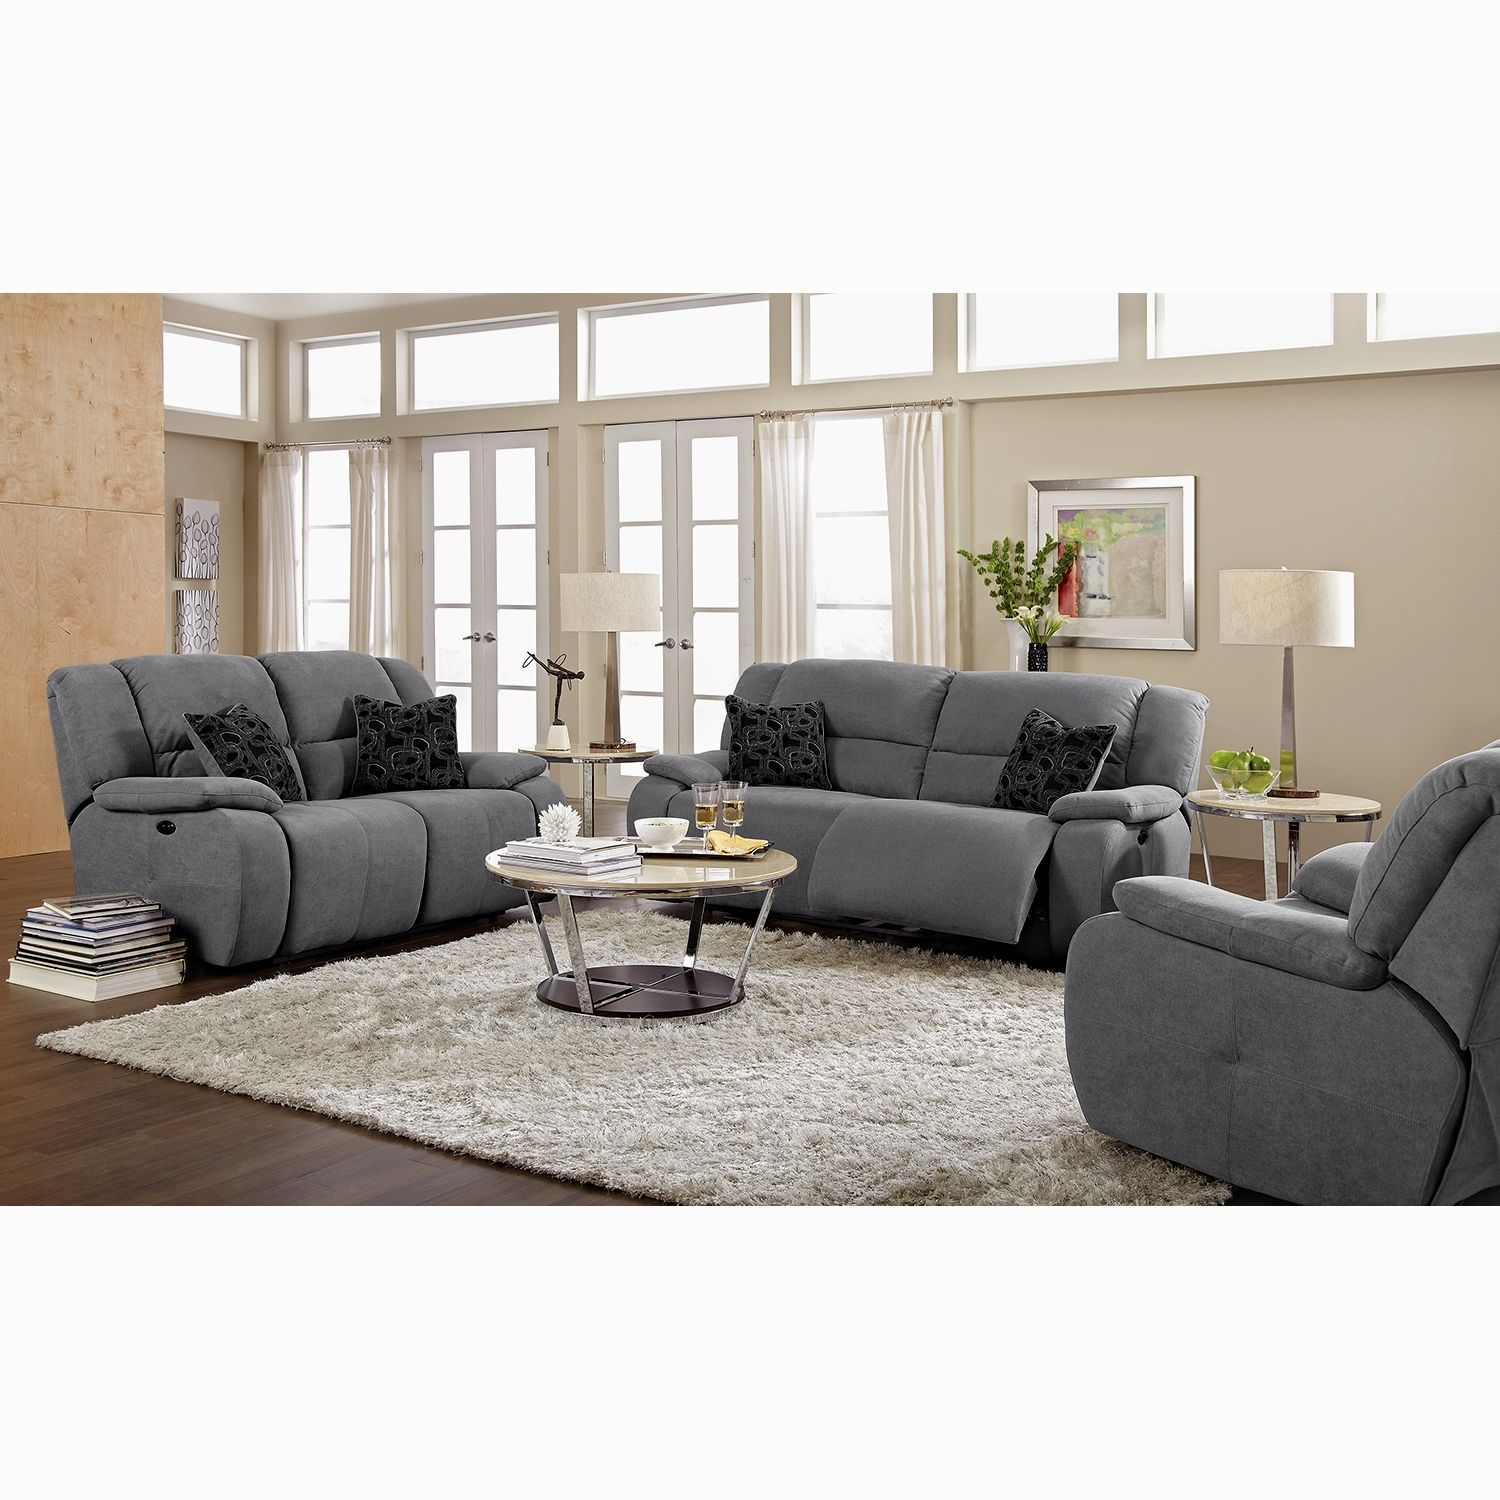 beautiful gray sectional sofa with chaise picture-Superb Gray Sectional sofa with Chaise Collection